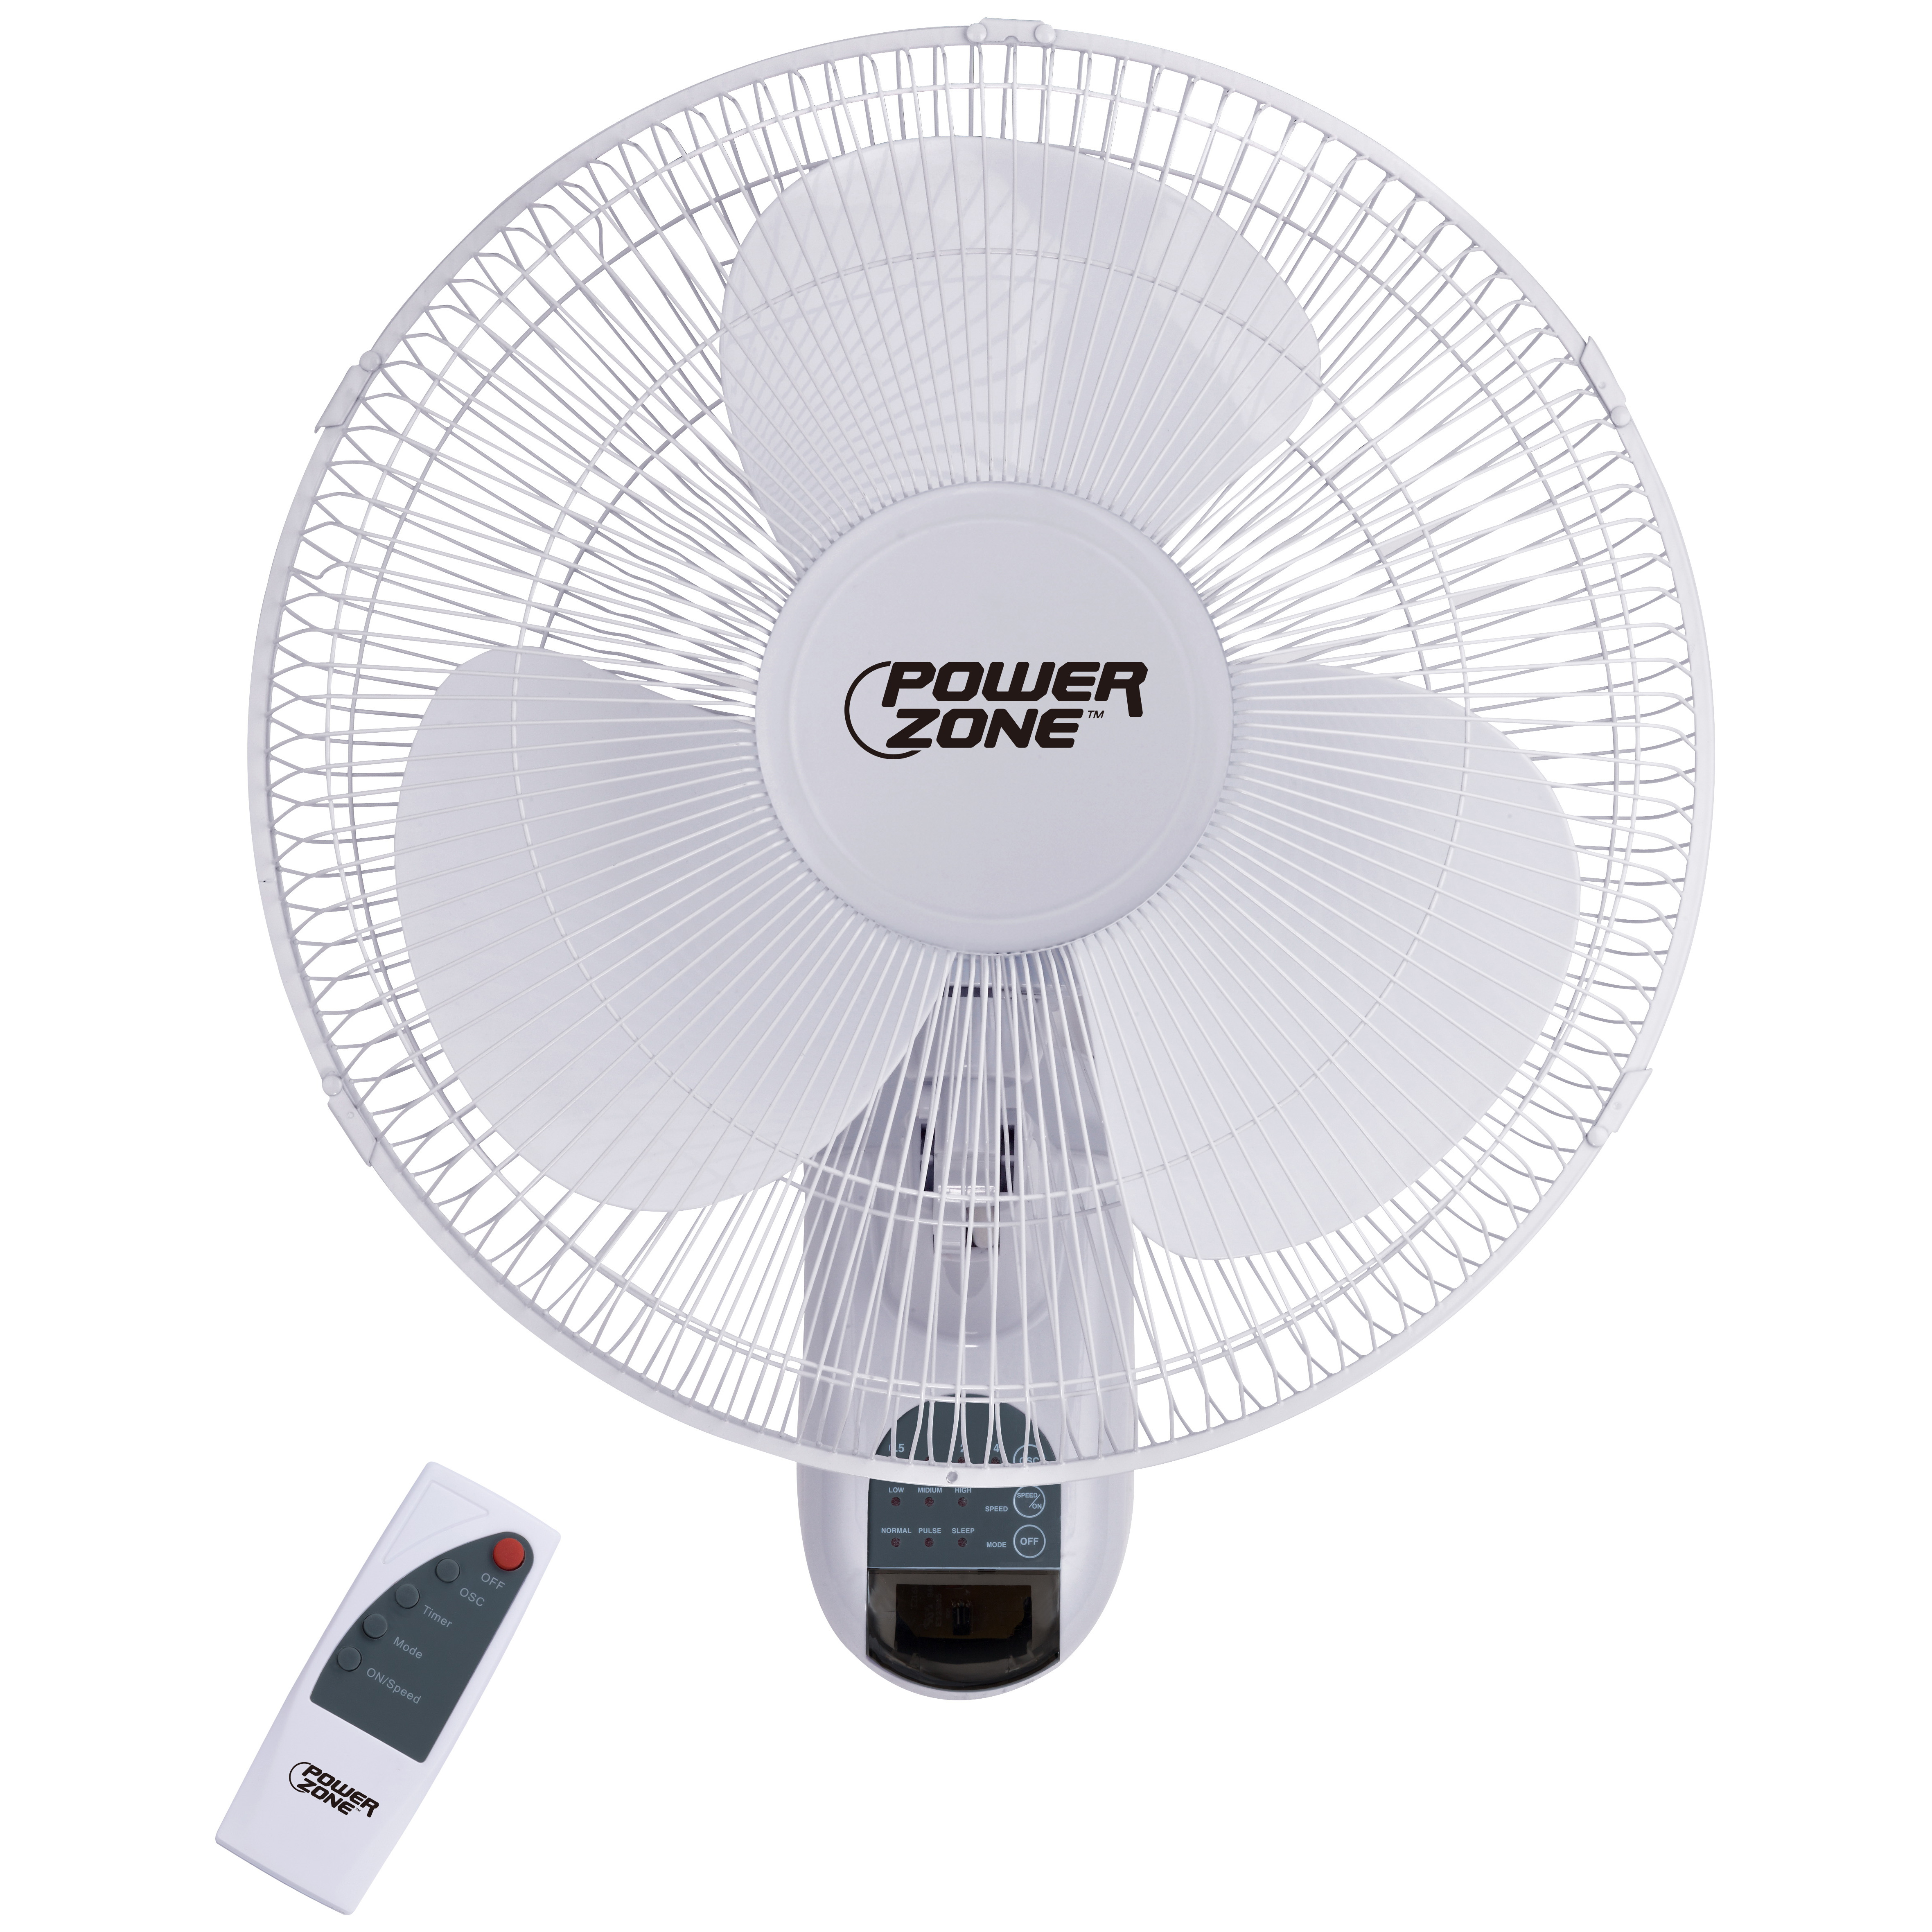 Picture of PowerZone FTW-40 Wall-Mount Fan, 120 V, 16 in Dia Blade, 3-Blade, Plastic Blade, 3-Speed, White